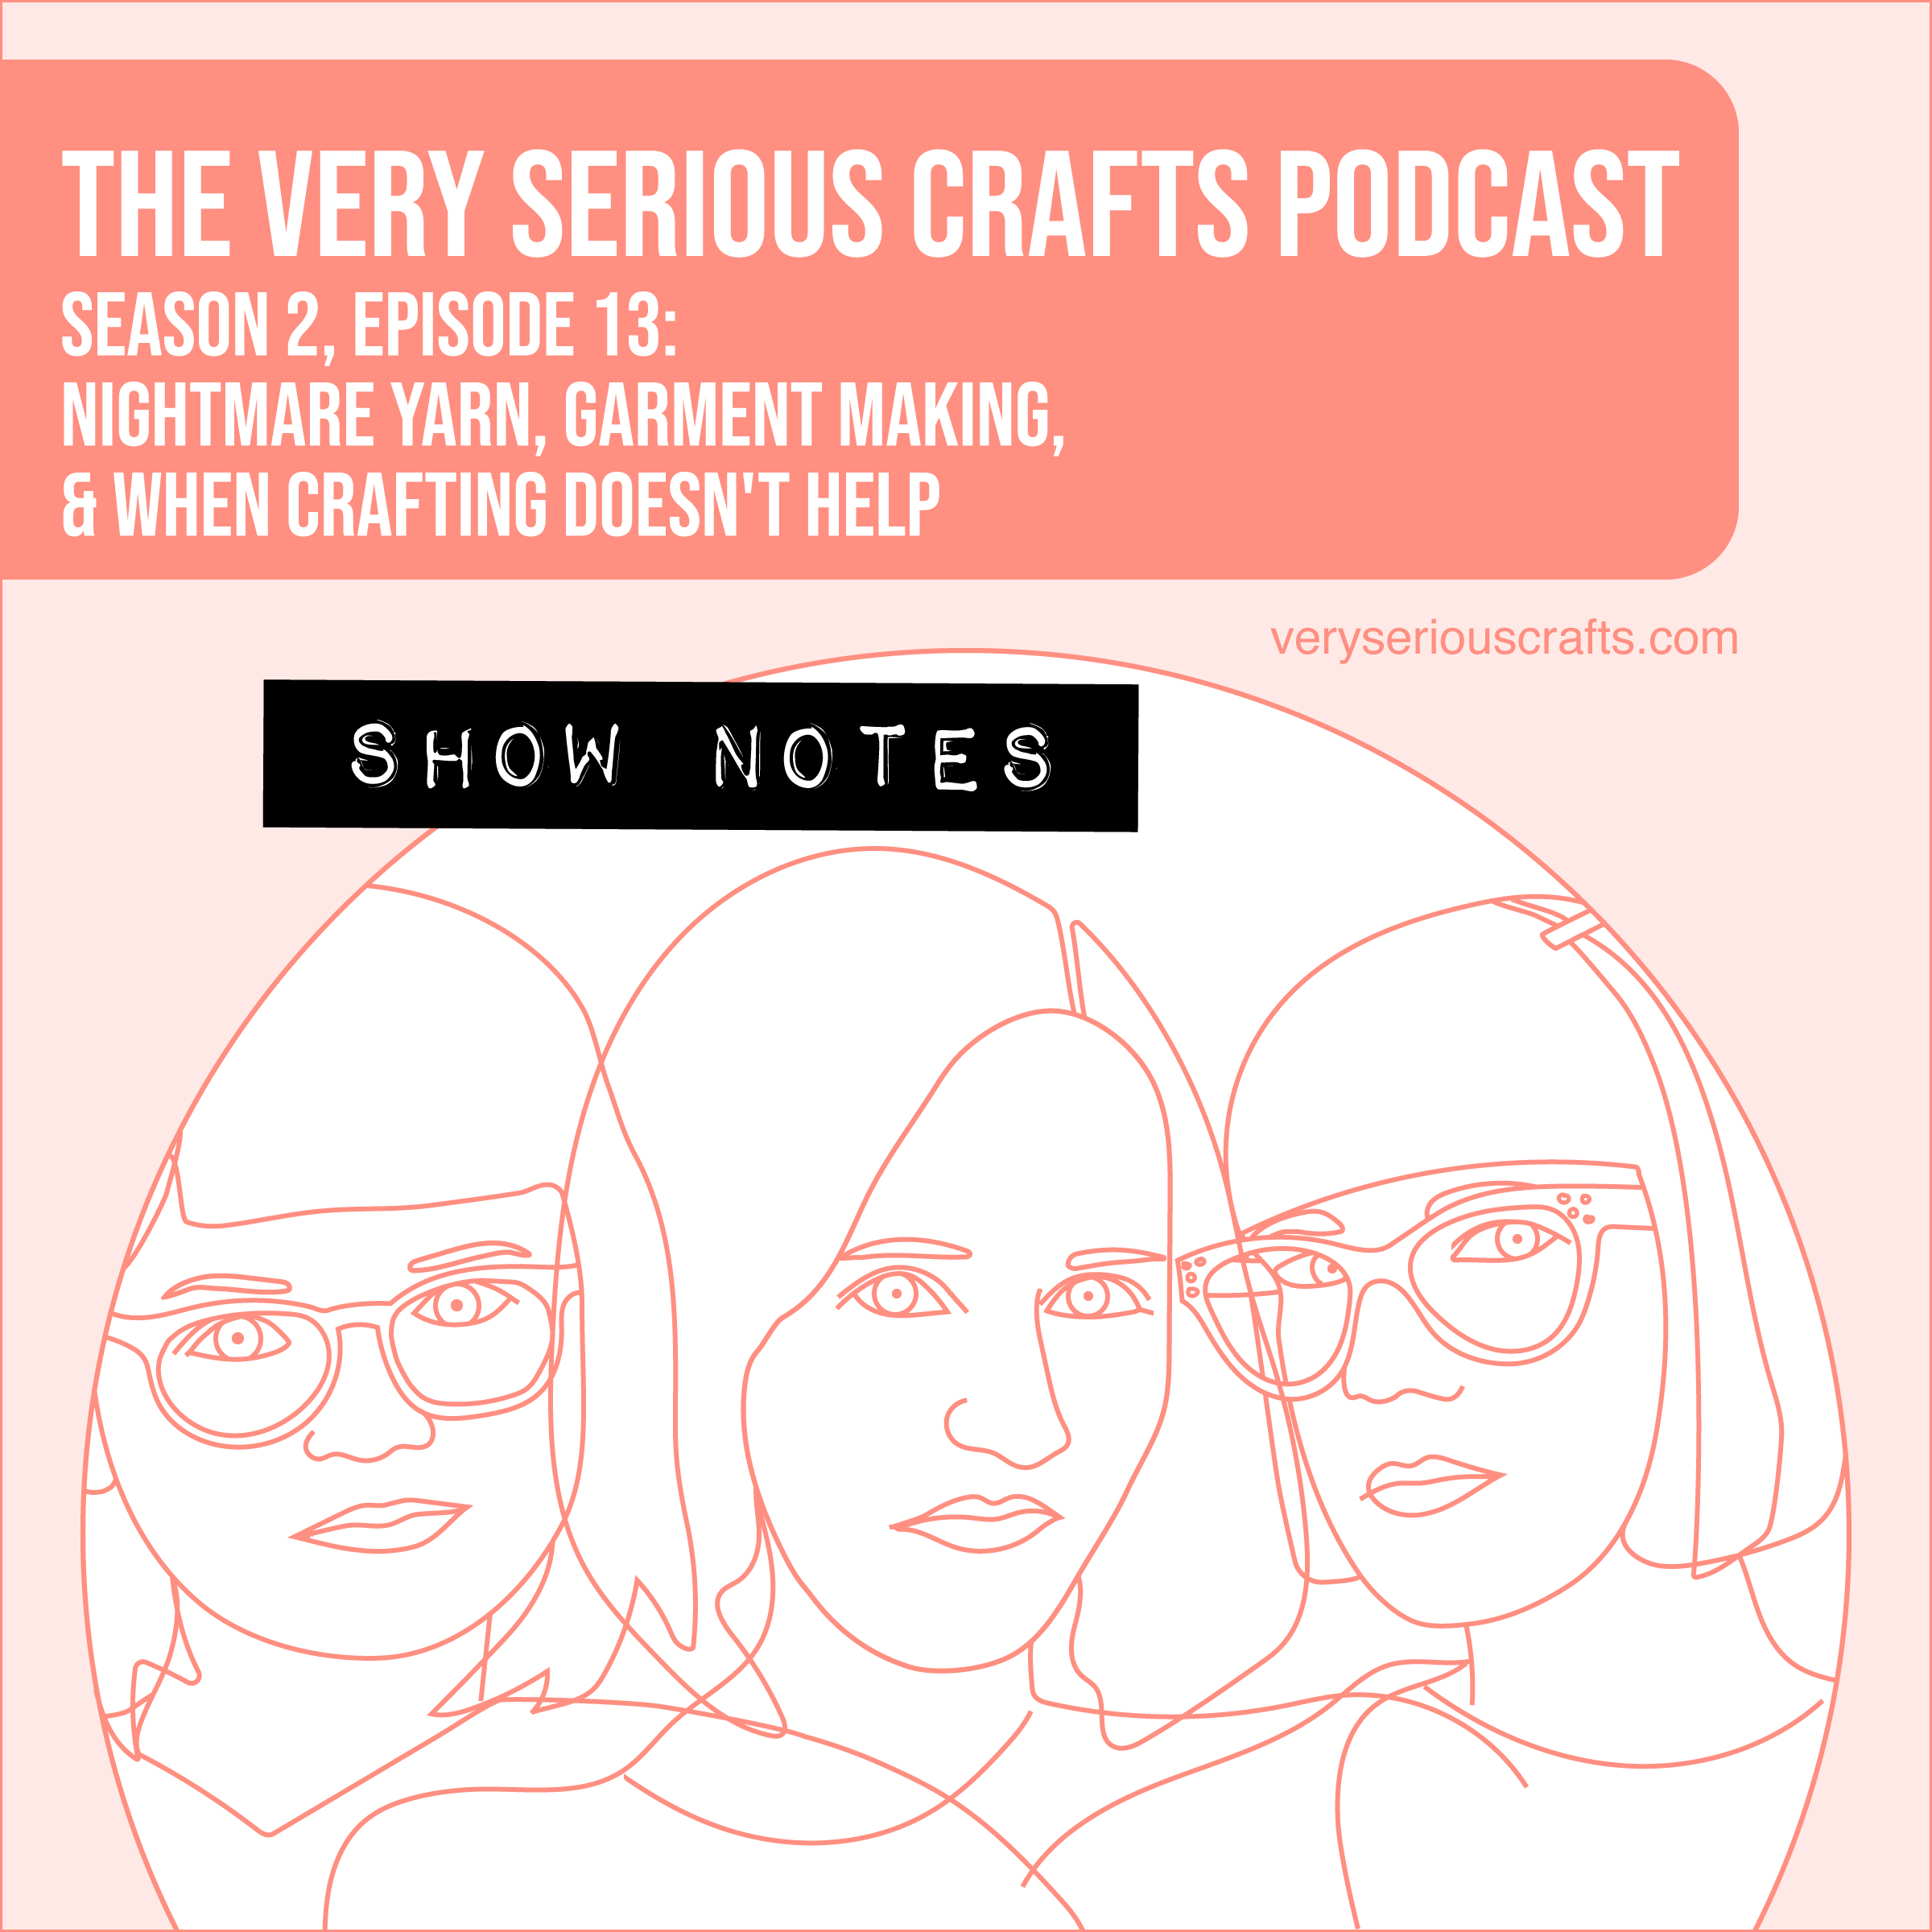 The Very Serious Crafts Podcast, Season 2: Episode 13 – Show Notes